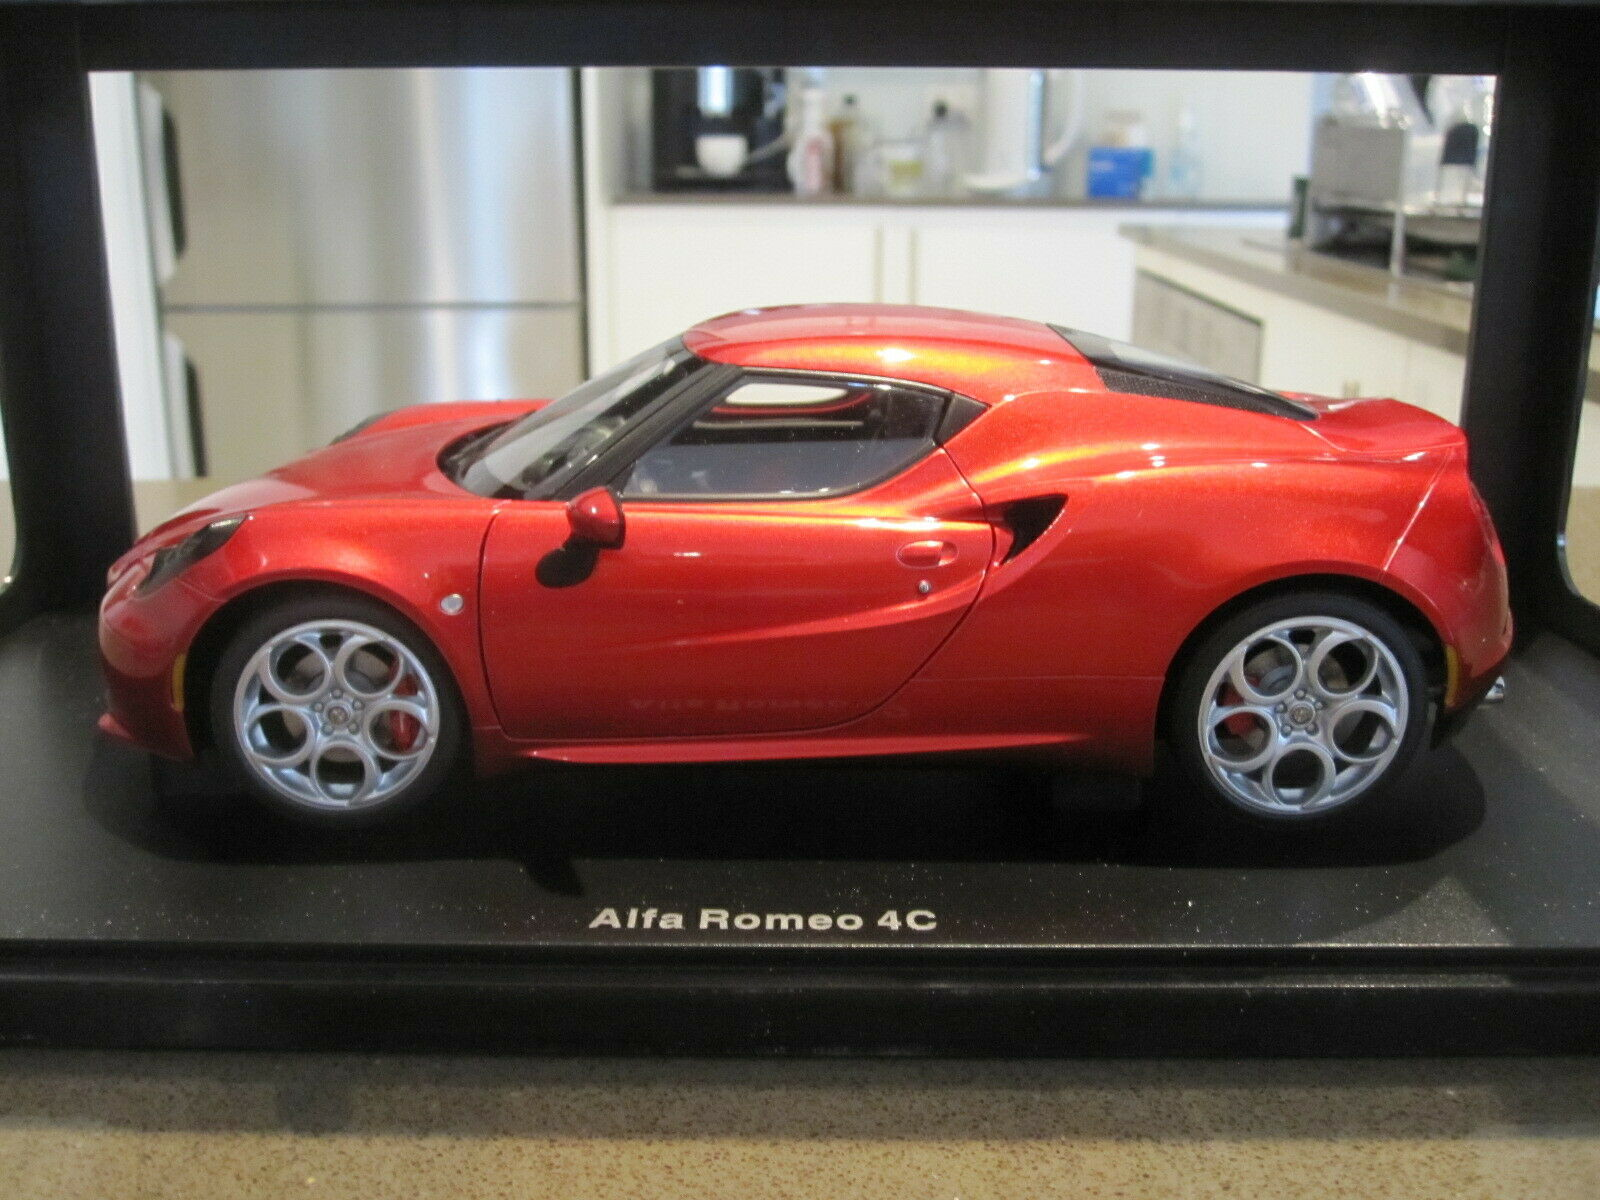 ALFA ROMEO 4C COMPETITION RED 1//18 MODEL CAR BY AUTOART 70186